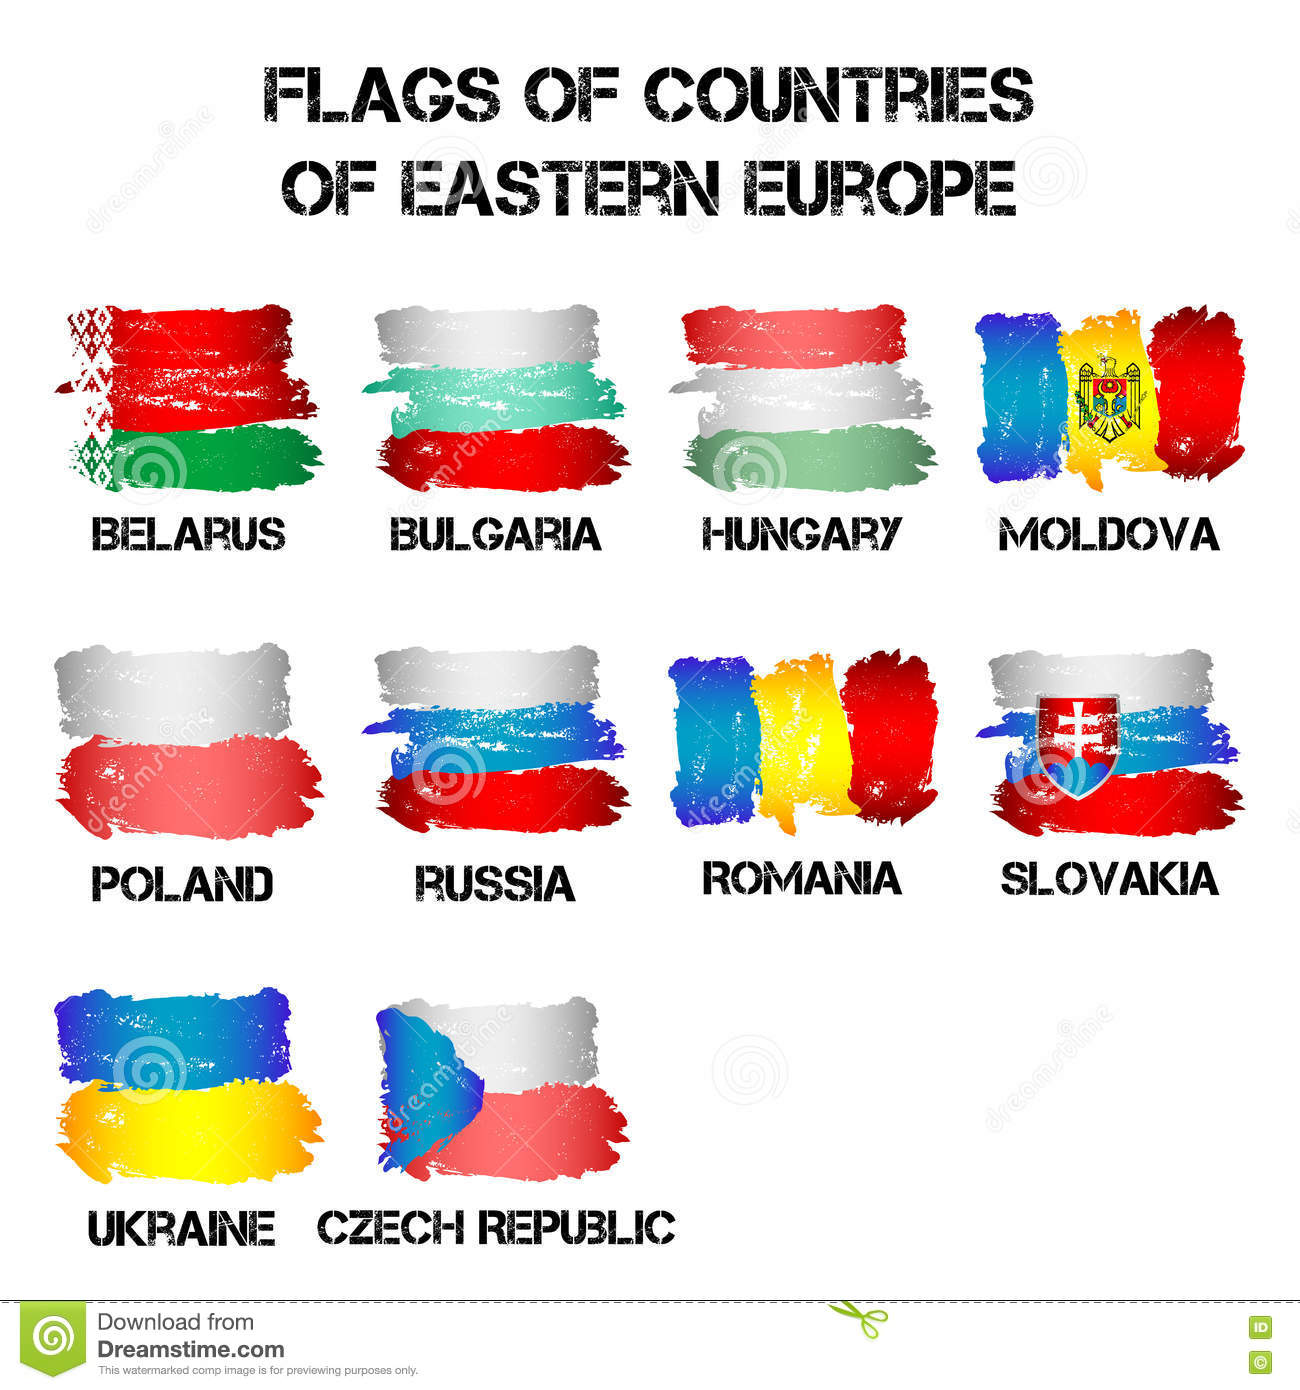 Is russia considered an eastern european country?